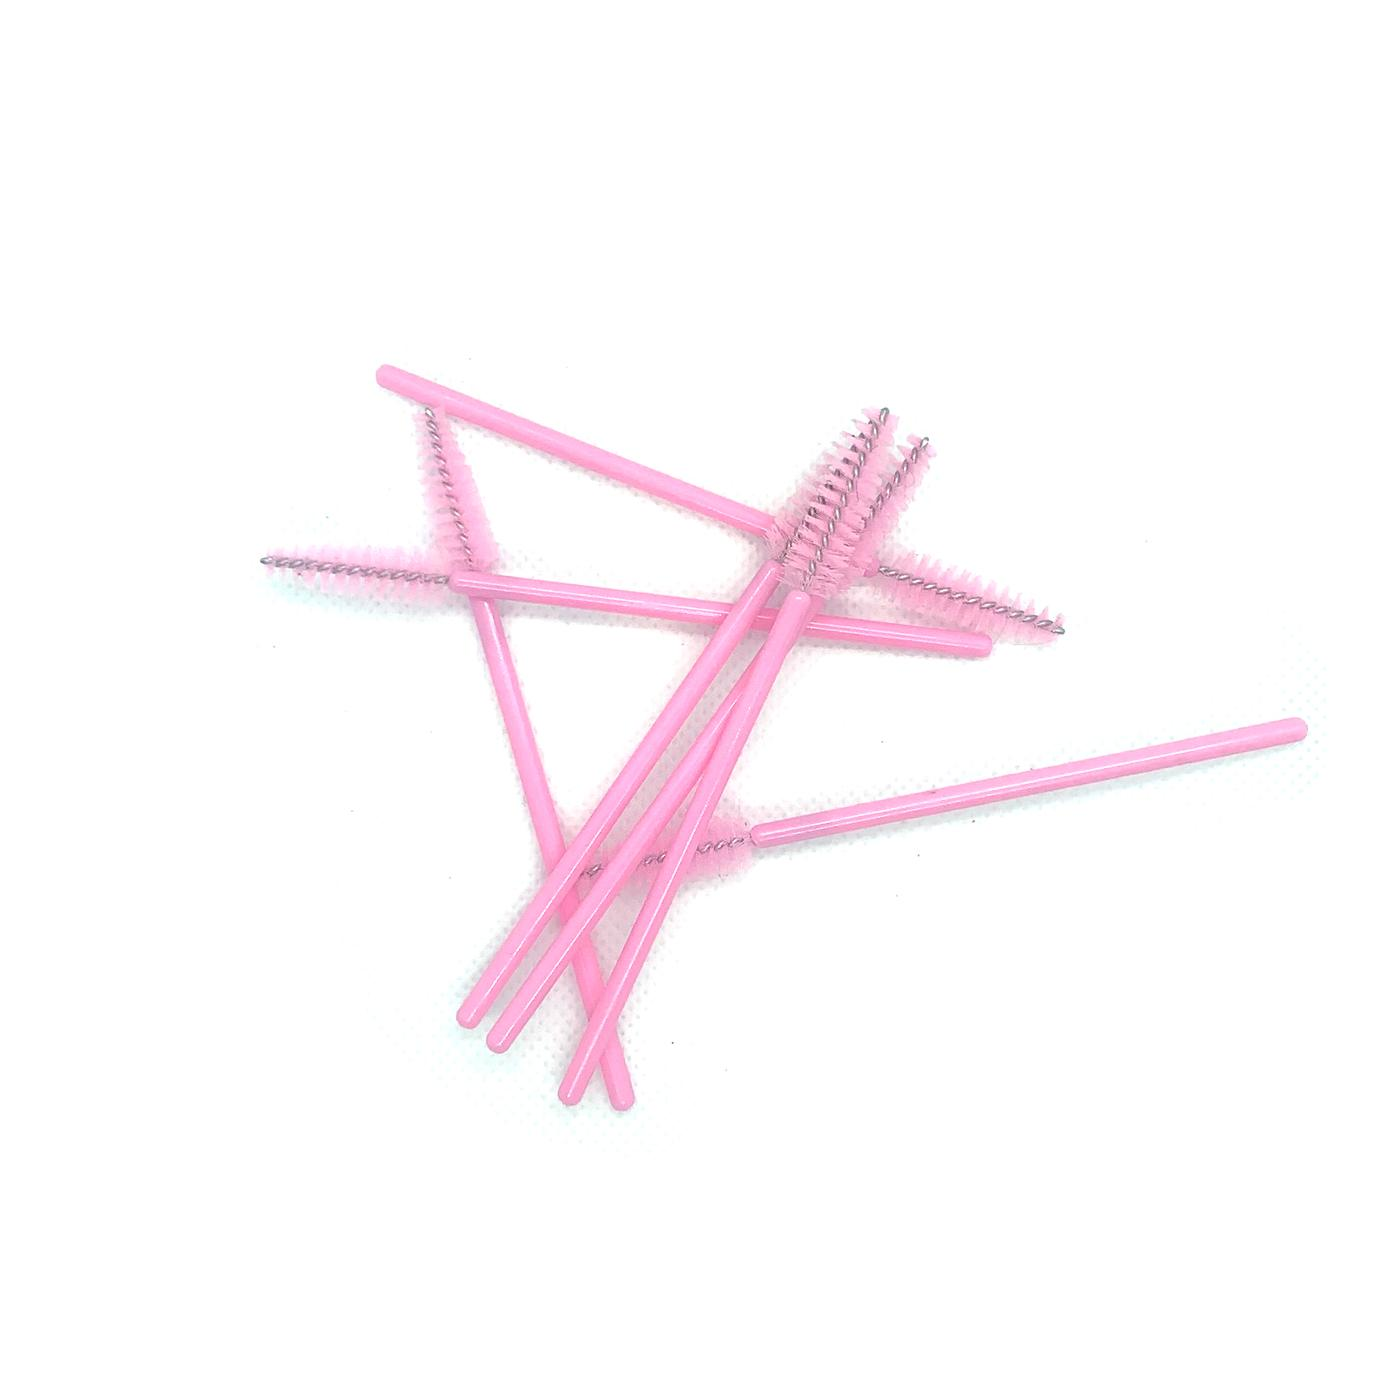 Disposable pink mascara wands